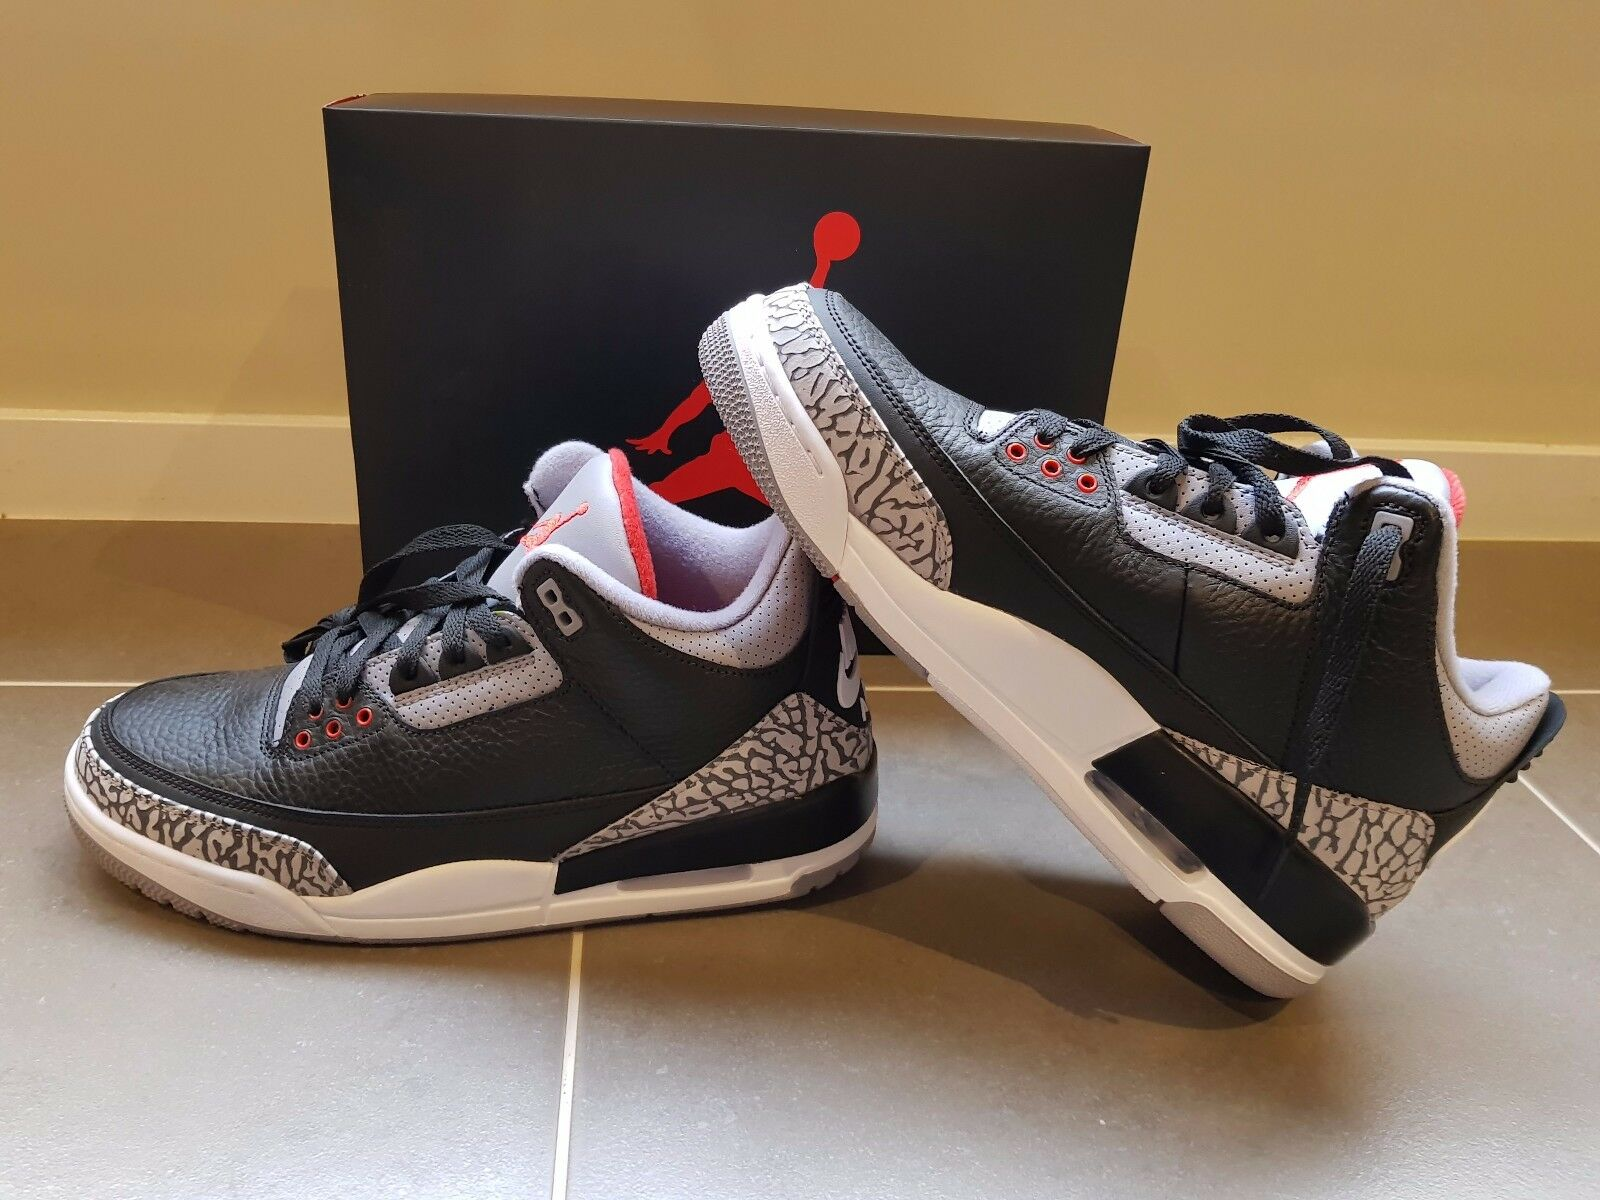 free shipping 094b7 f4136 Air Jordan 3 Retro OG Black Cement Cement Cement 2018 Men s US 9 5329ad